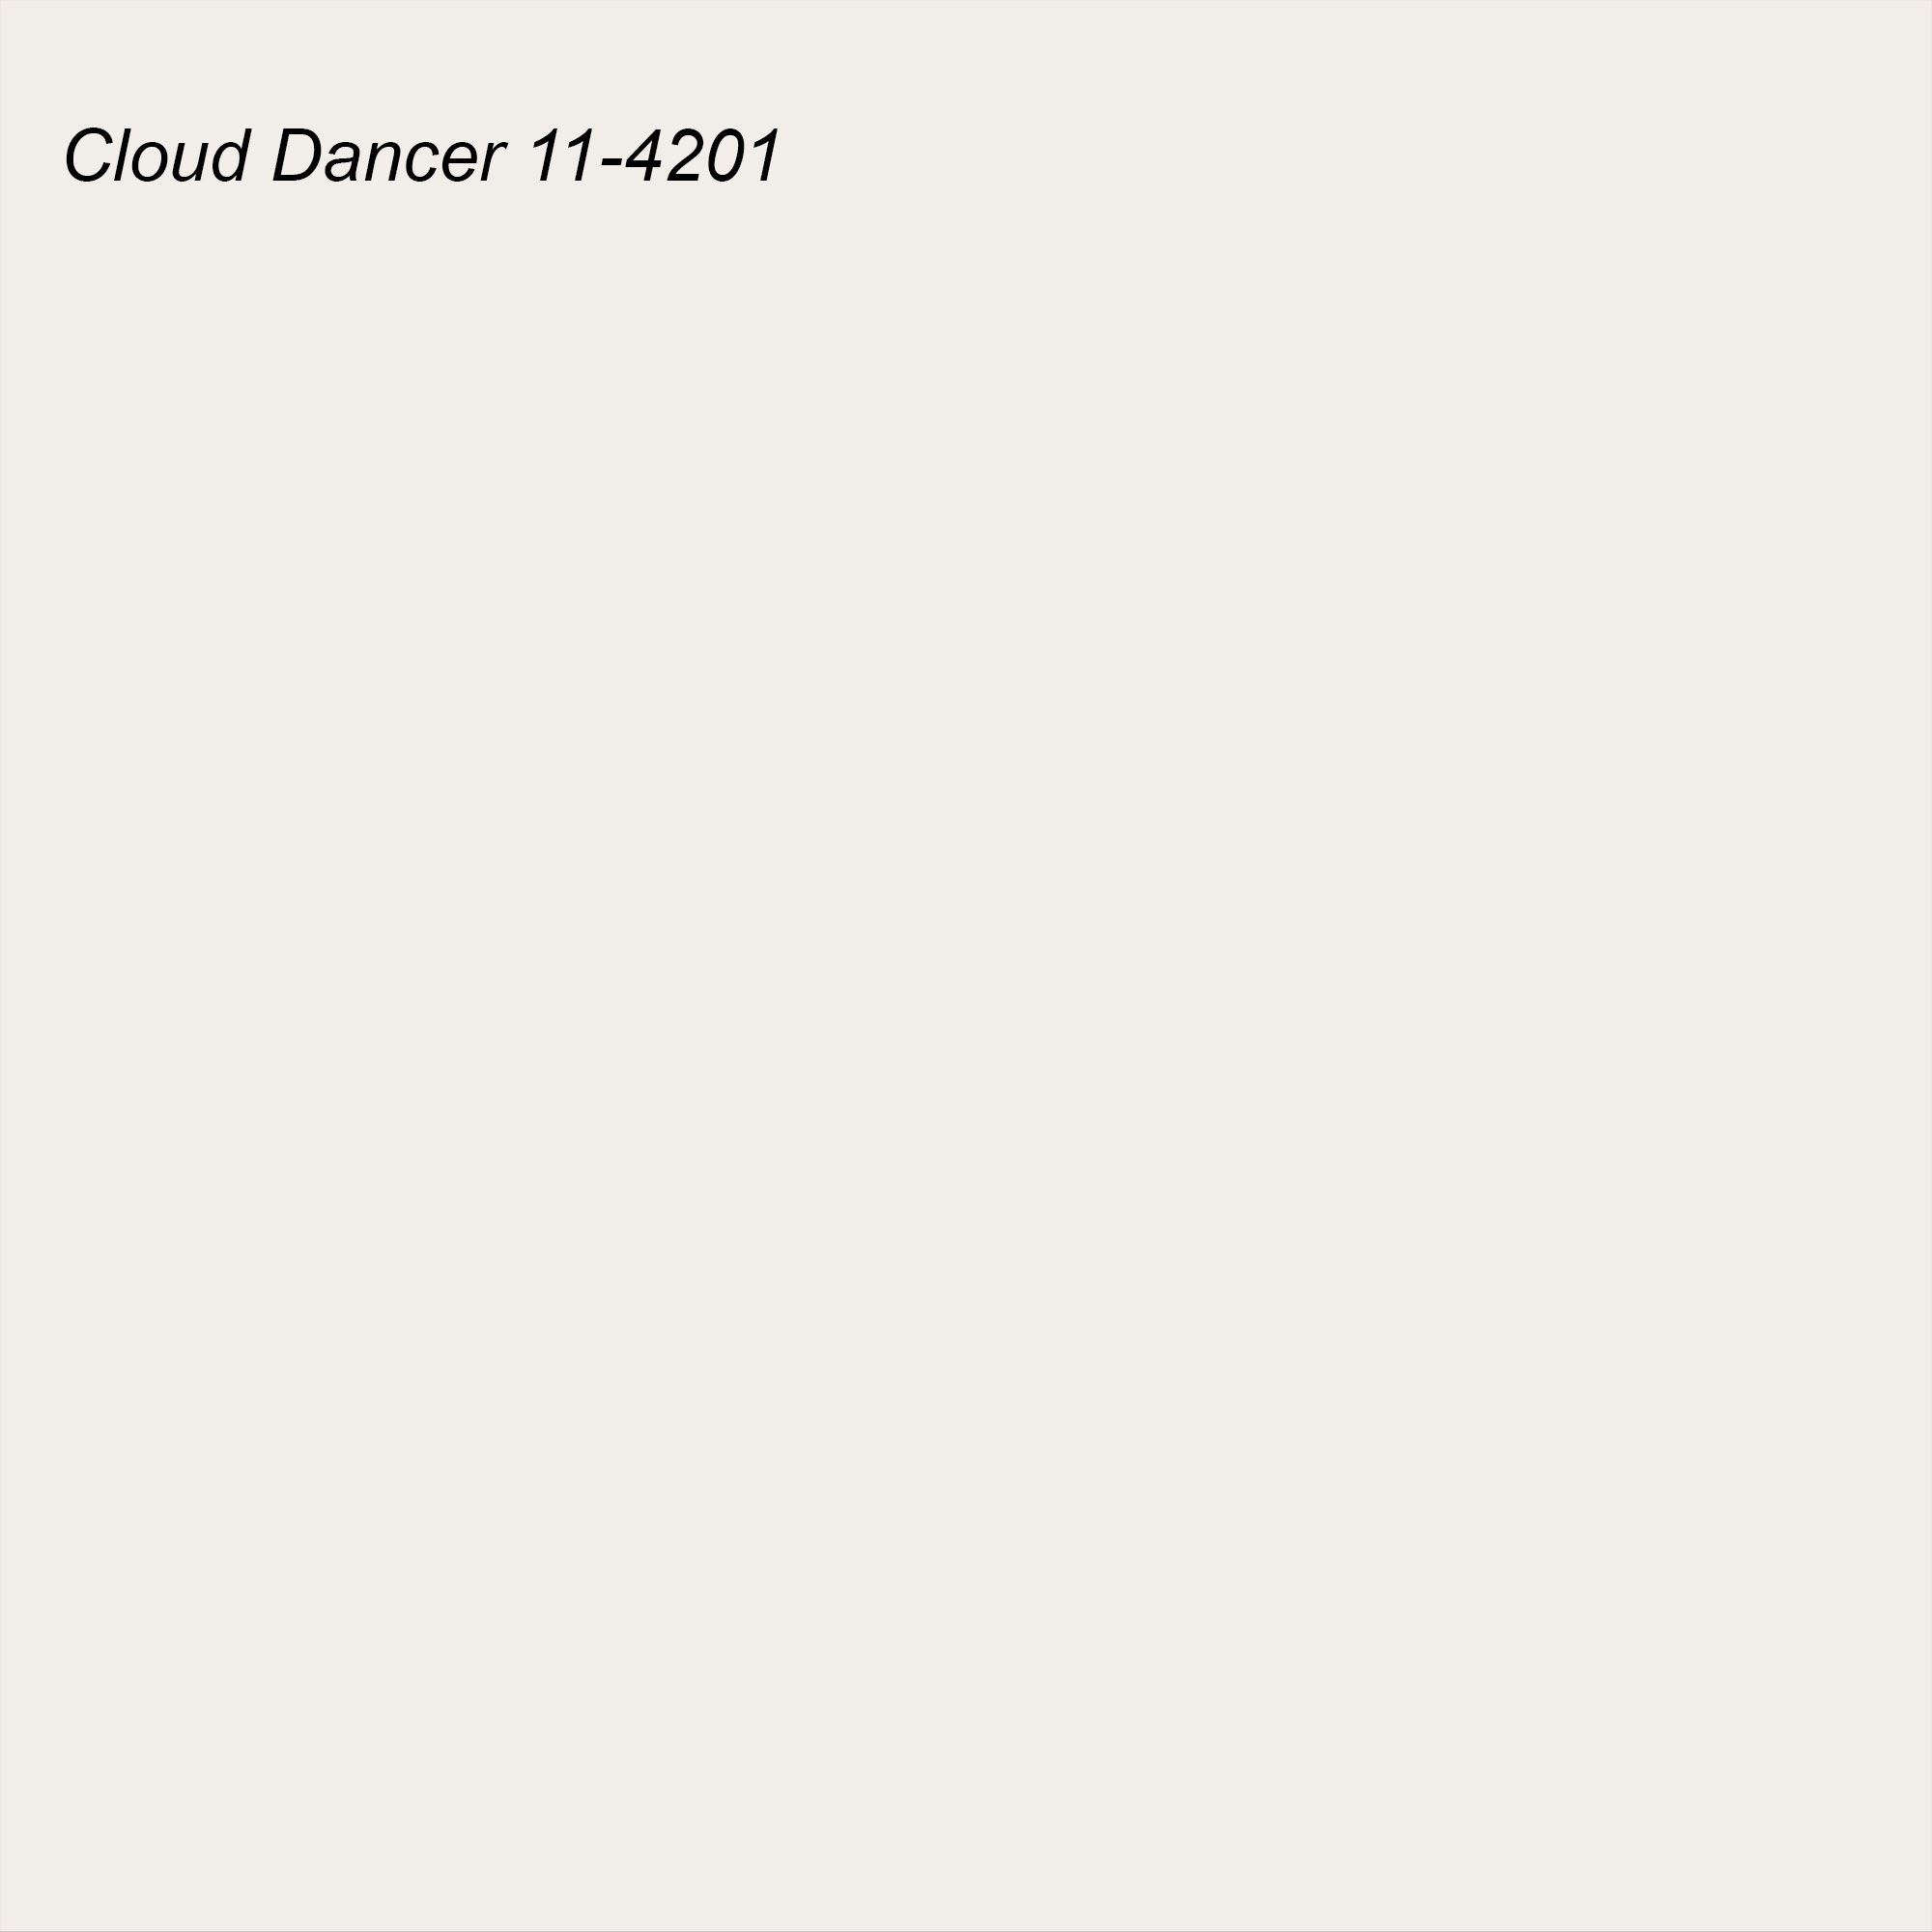 Pantone 2021 Color of the Year Suggested Accent Shade Cloud Dancer 11-4201